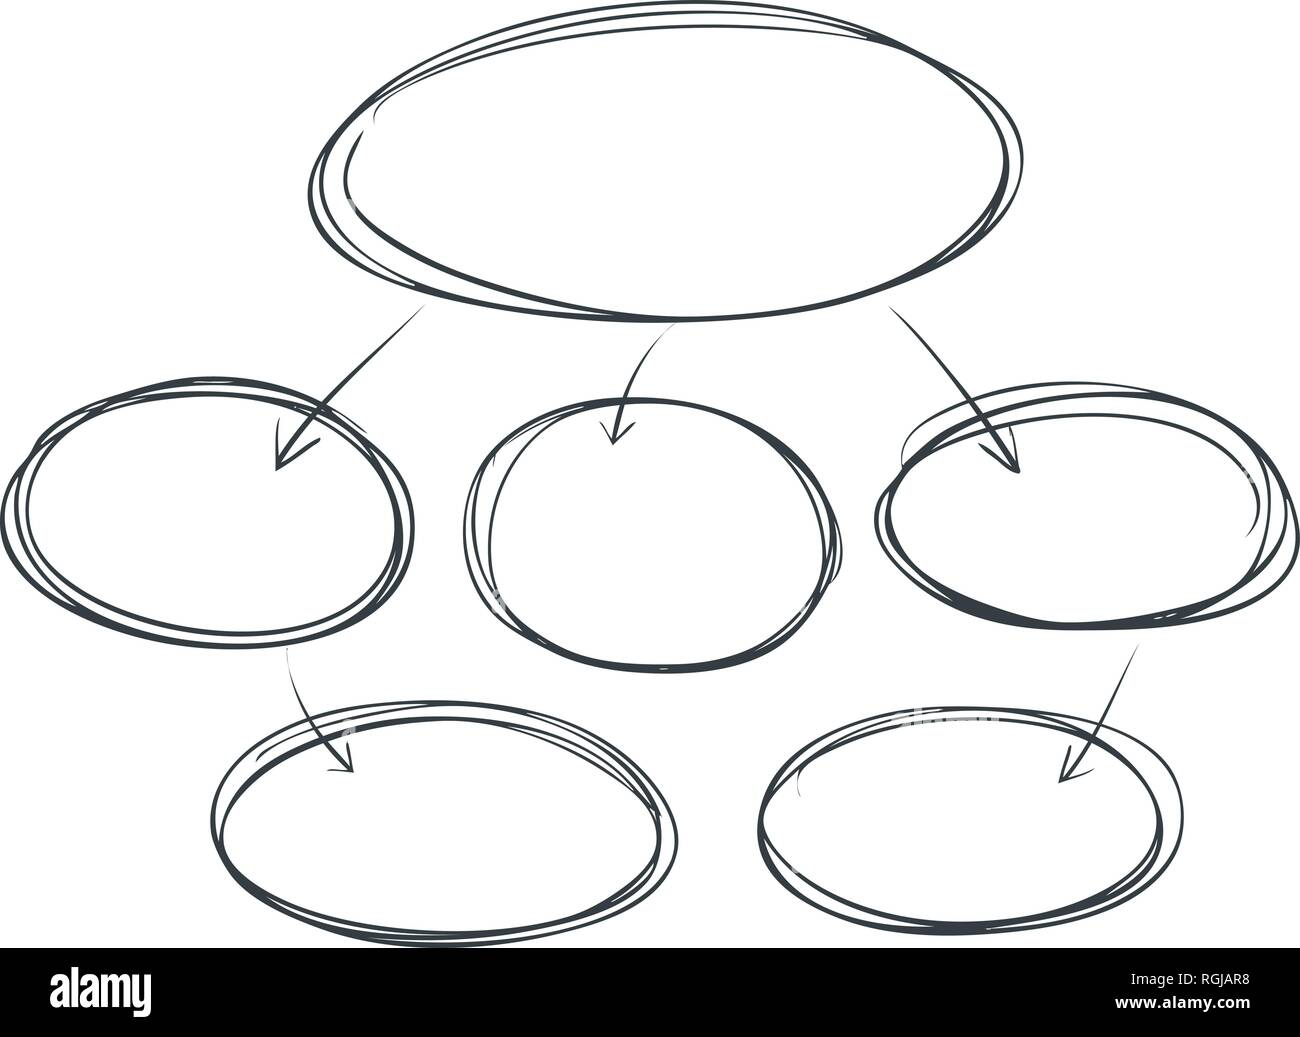 Business flowchart, infographic. Graphical diagram, scheme, chart. Template for presentation, sketch vector illustration - Stock Image